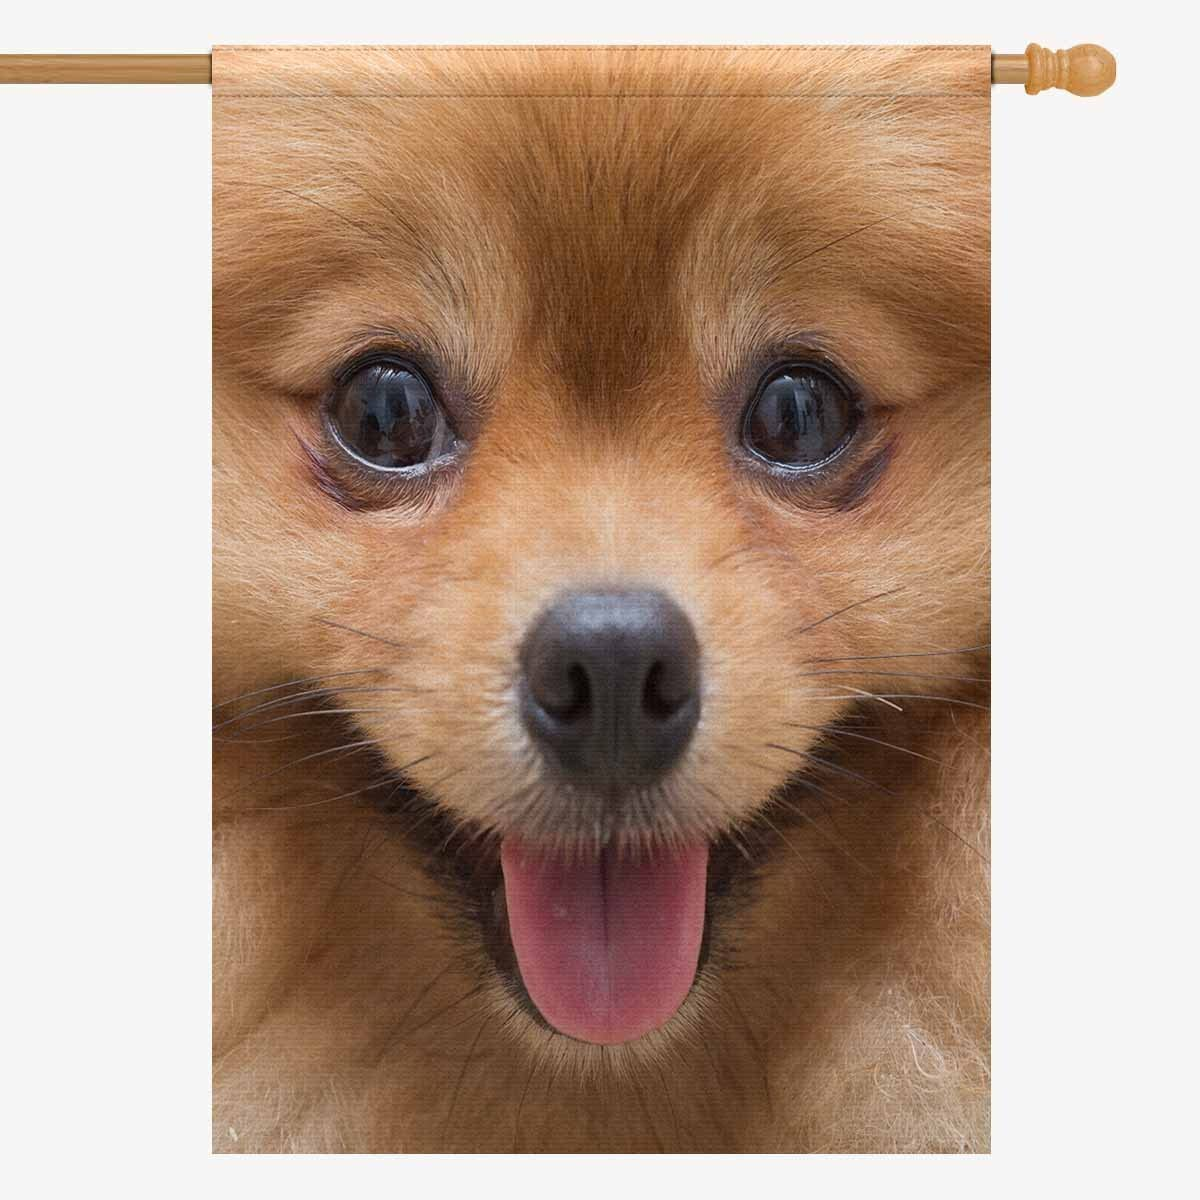 Amazon Com Interestprint House Flag House Banner Cute Puppy Pomeranian Dog Cute Pets Decorative Yard Flag For Wishing Party Home Outdoor Decor Oxford Cloth 28 X 40 Without Flagpole Garden